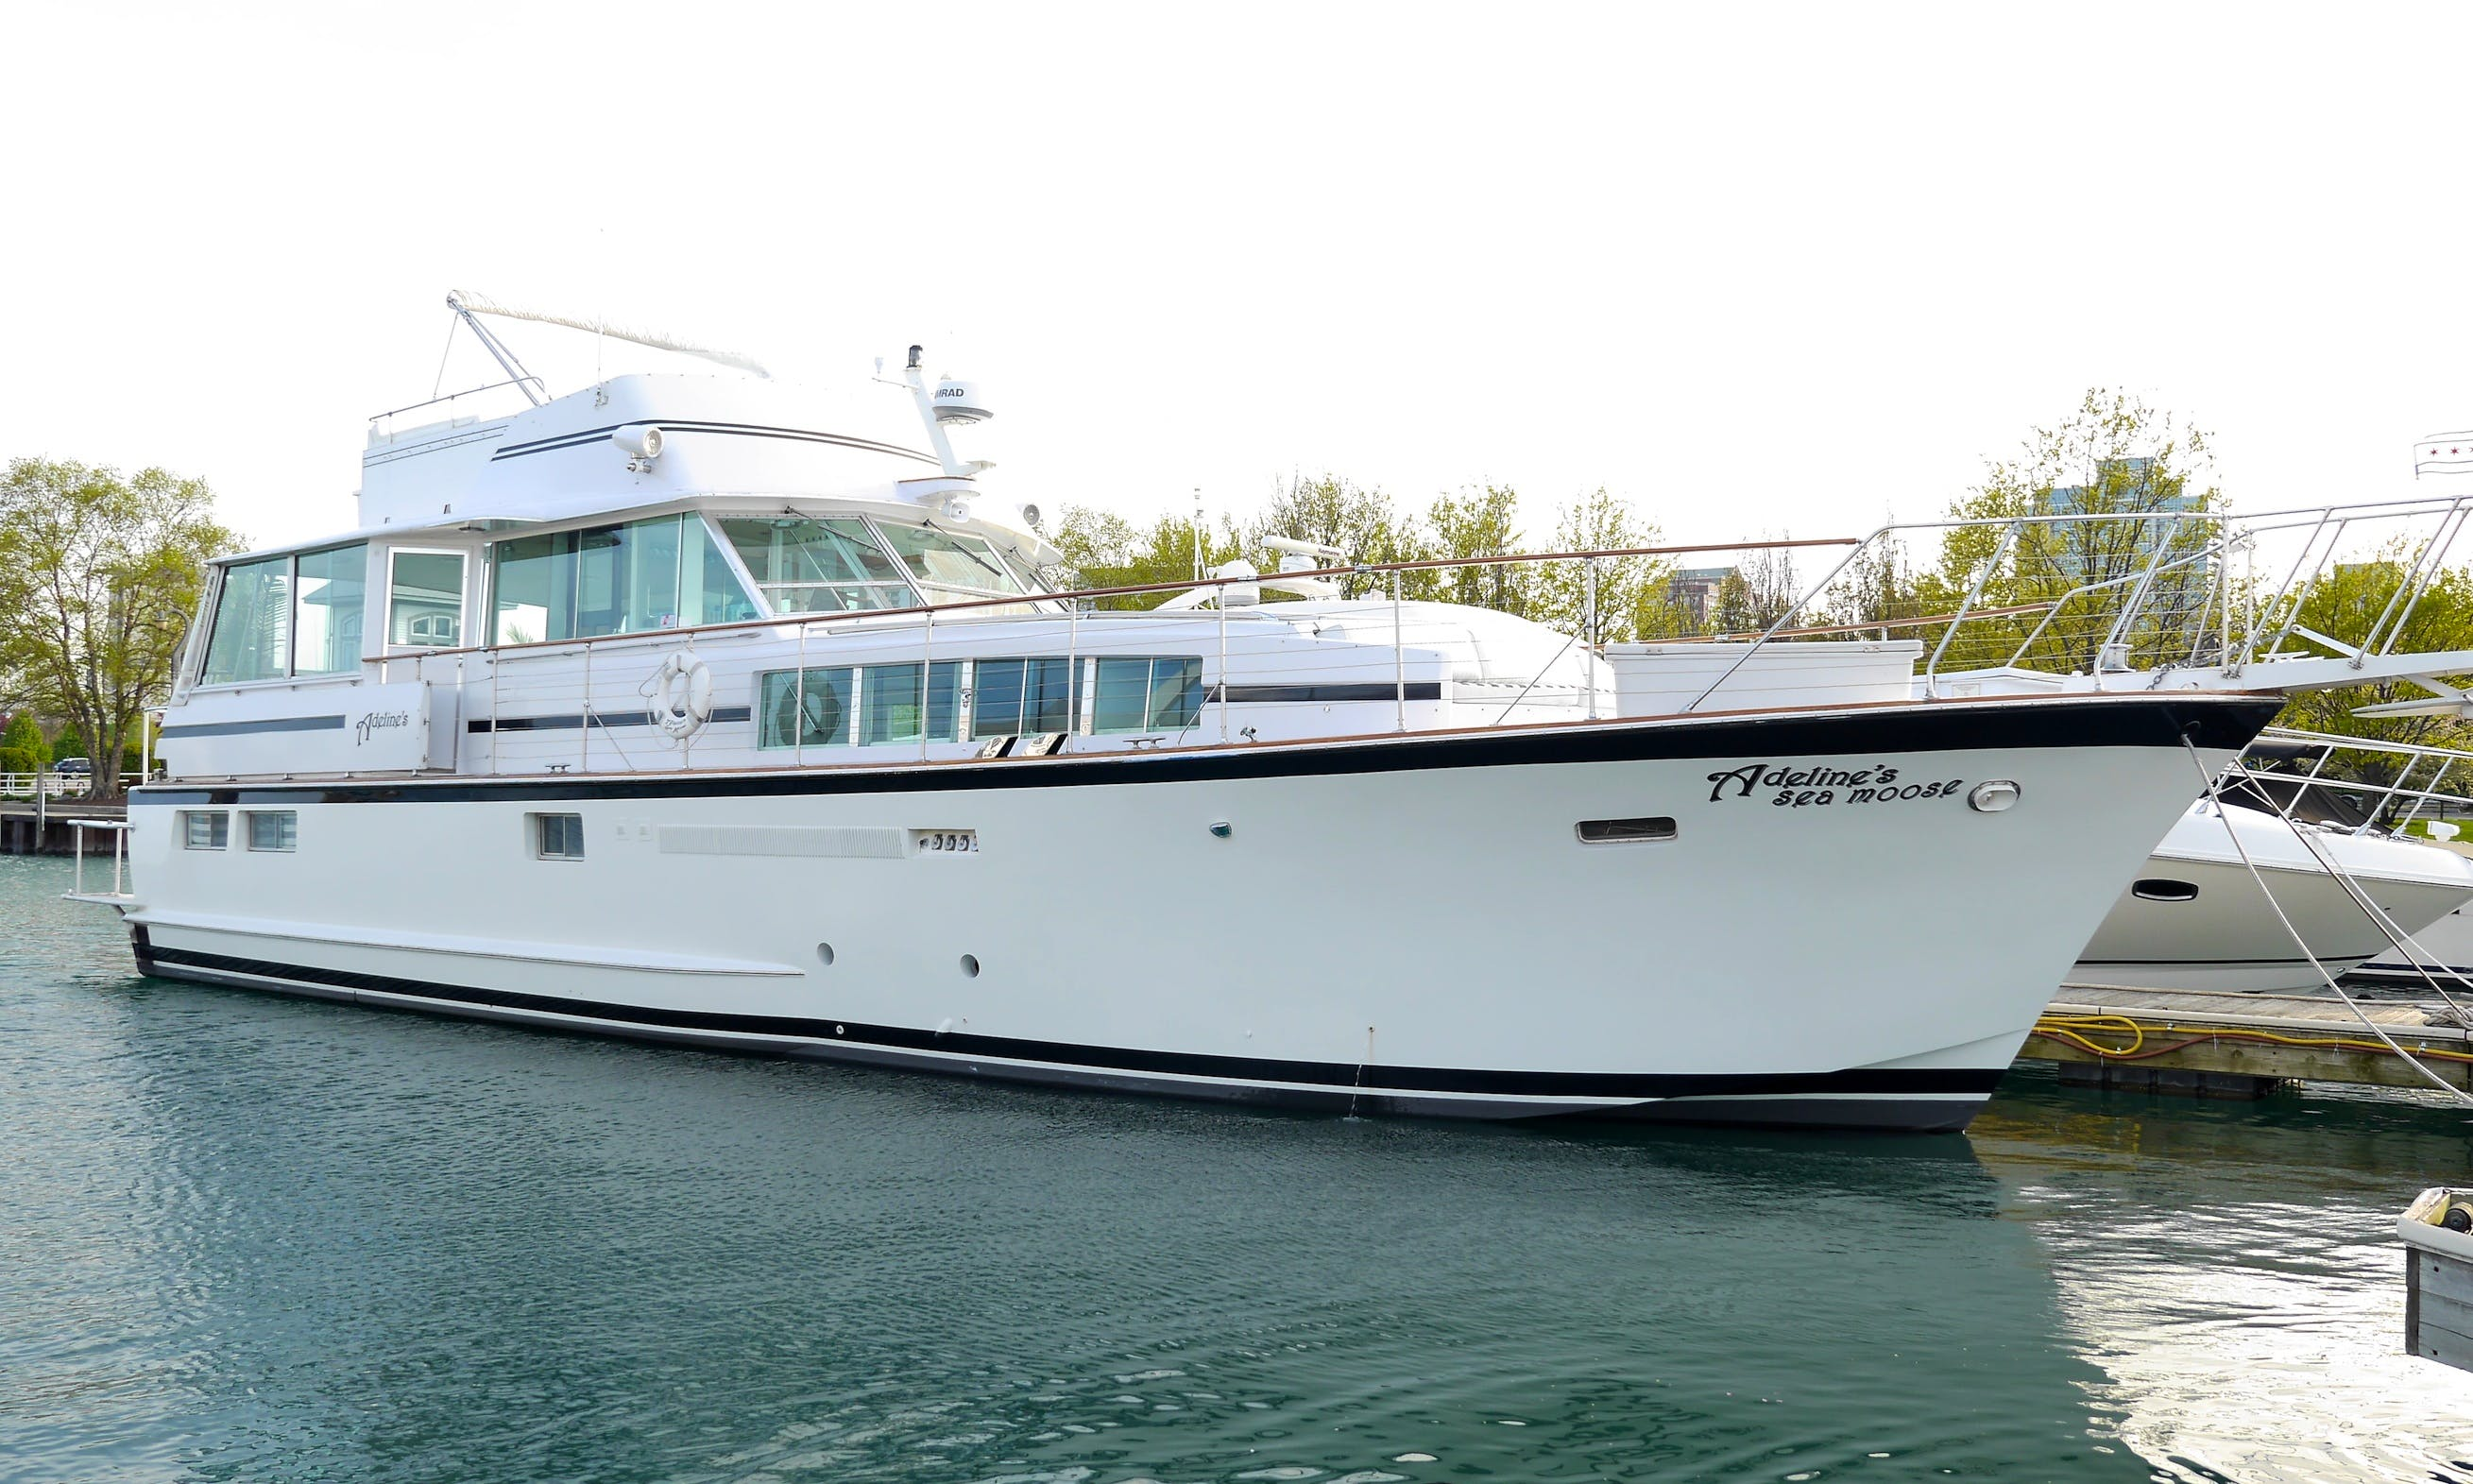 Adeline's Sea Moose, Most Luxurious Private Yacht Charters in Chicago, 68'